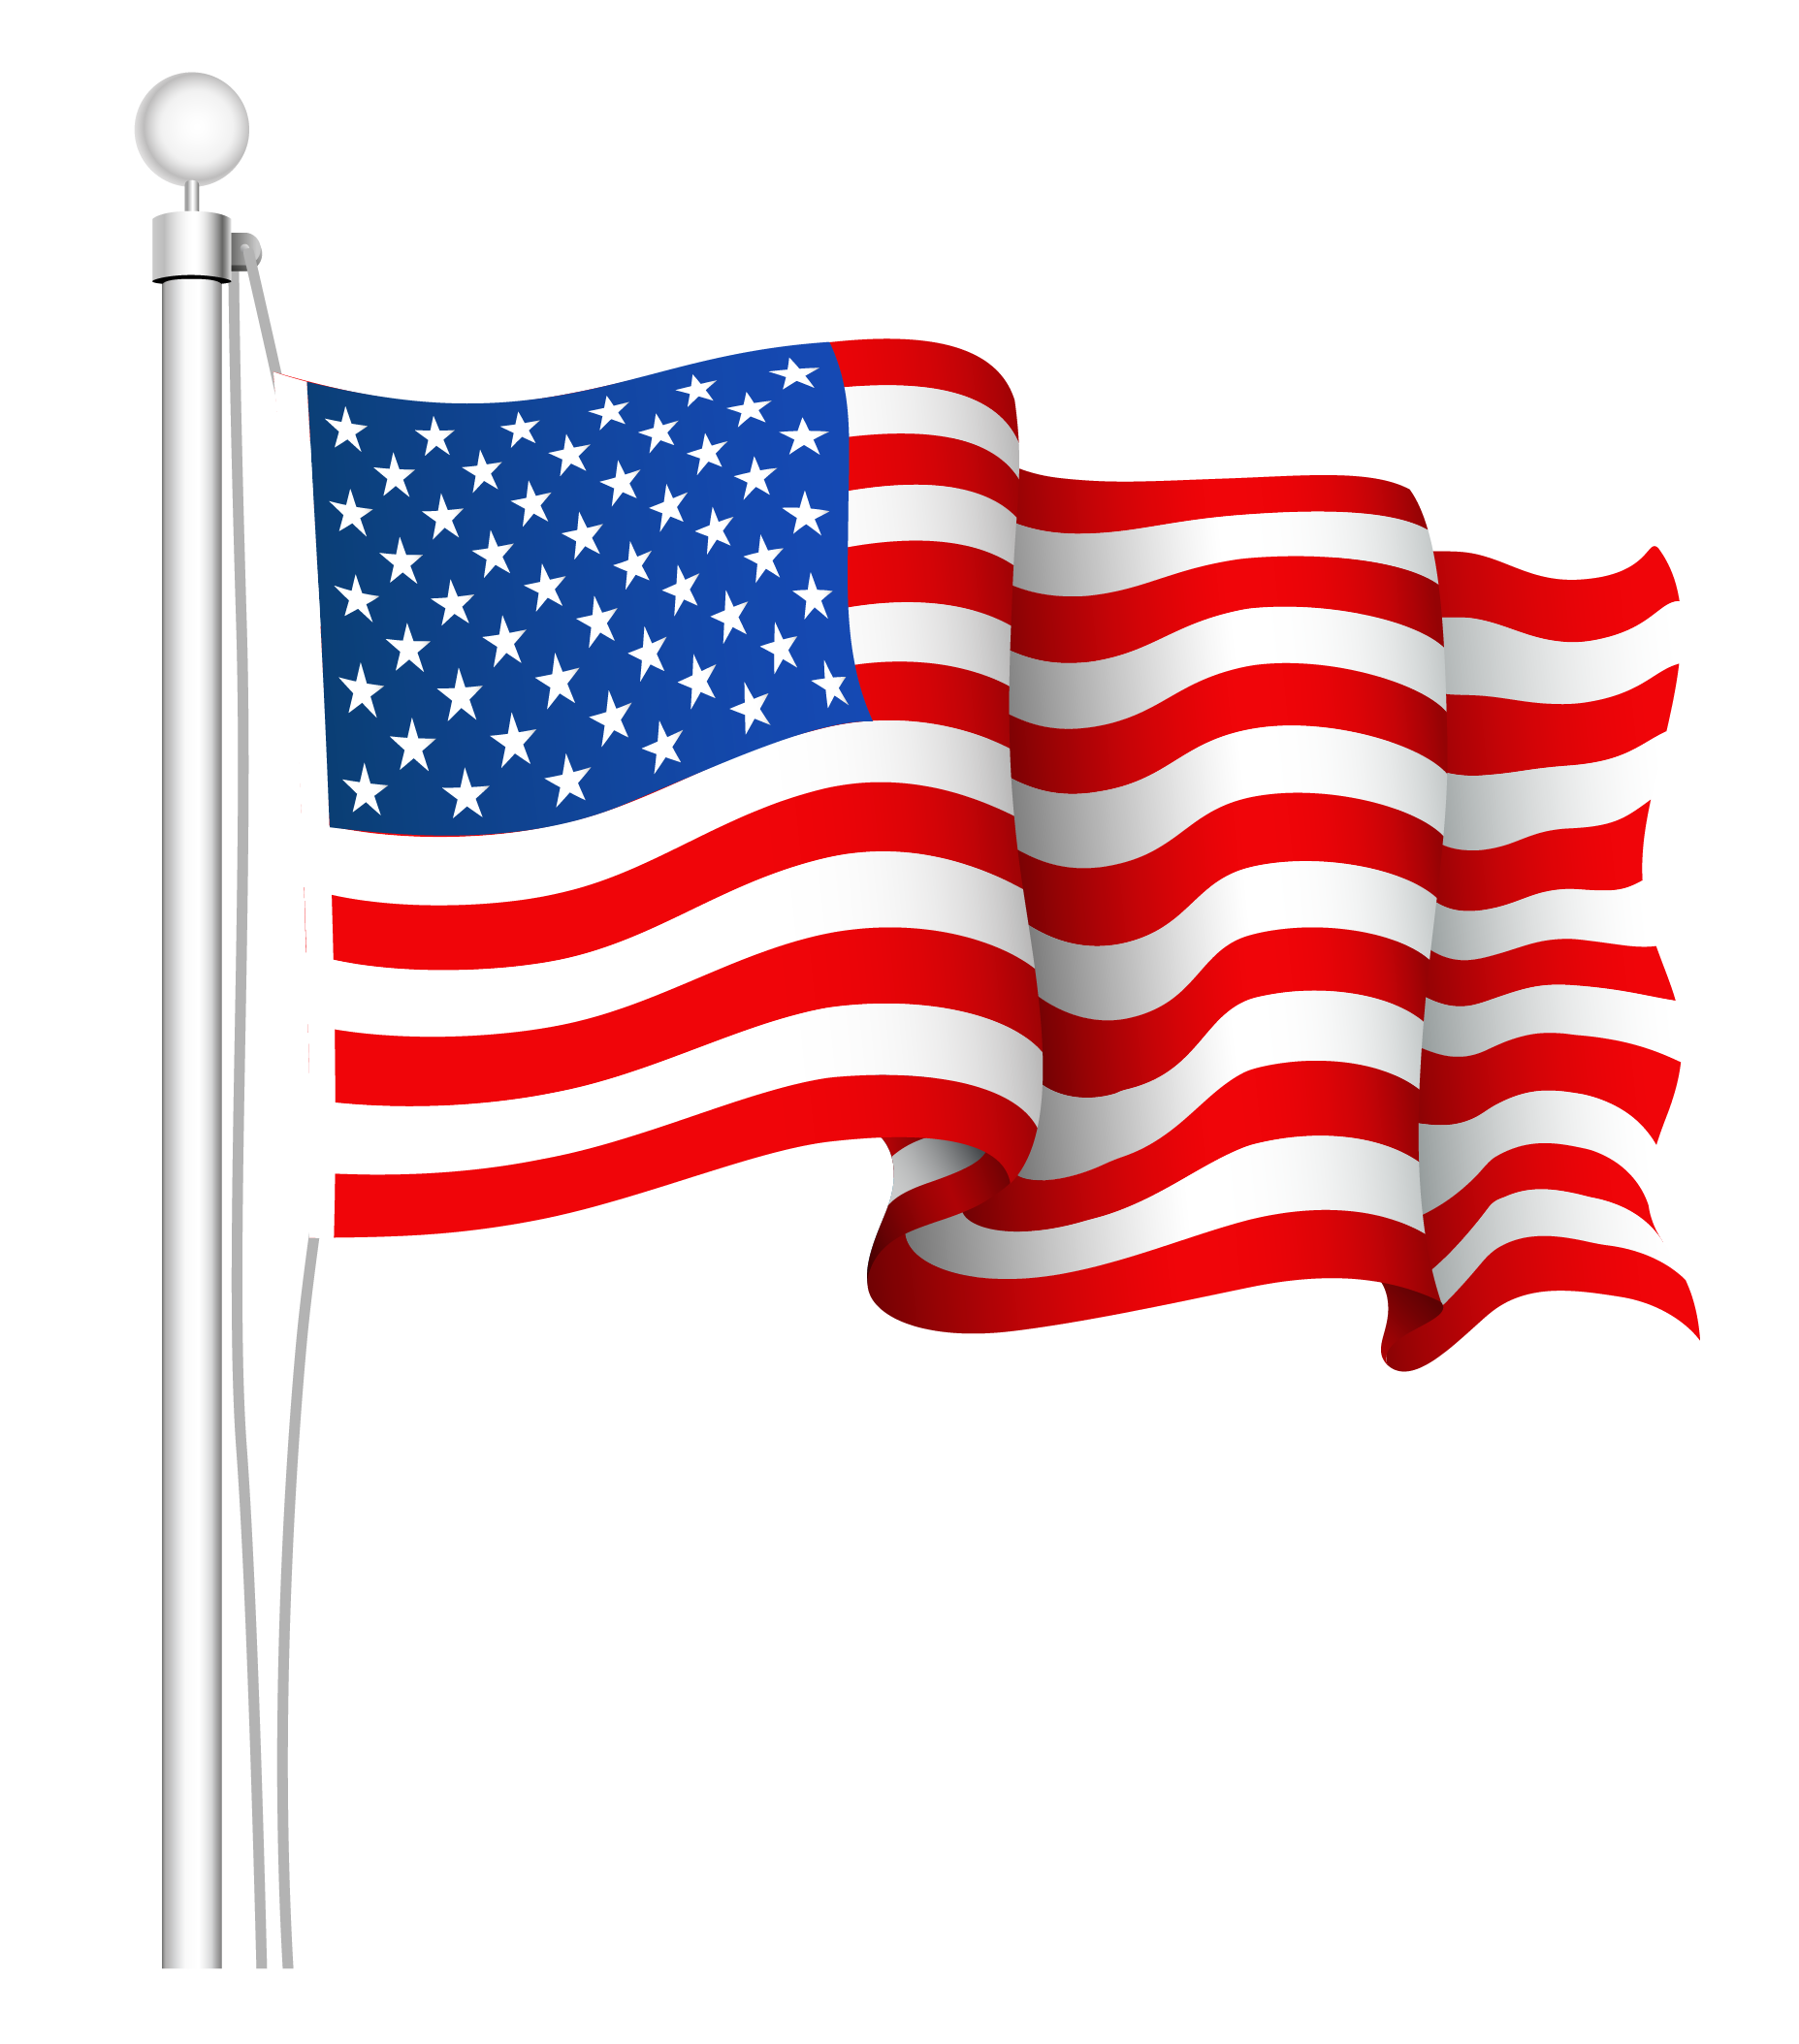 Small american flag clip art clipart images gallery for free.